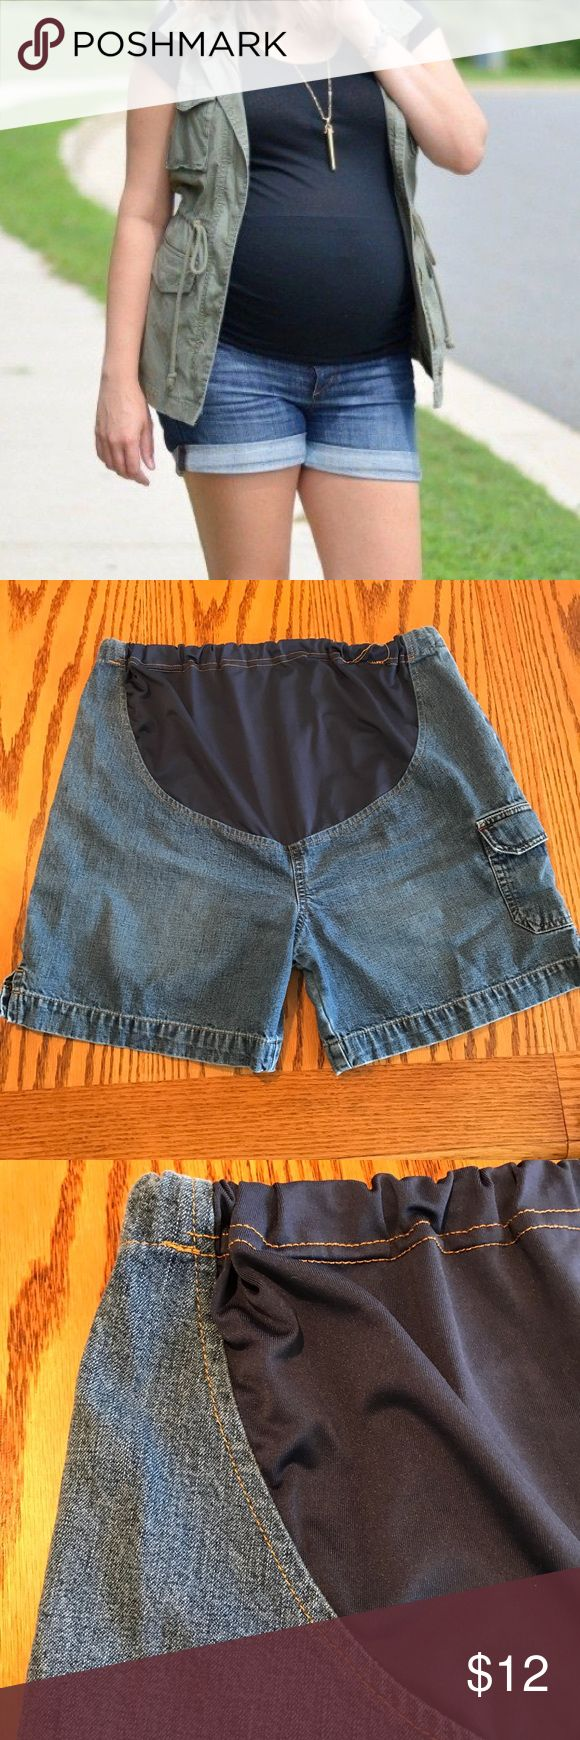 "Old Navy maternity jean shorts. Size medium Old Navy maternity jean shorts. Size medium. Can be worn long 17 1/2"" or rolled. Adjustable pull tabs in the back. Old Navy Shorts Jean Shorts"